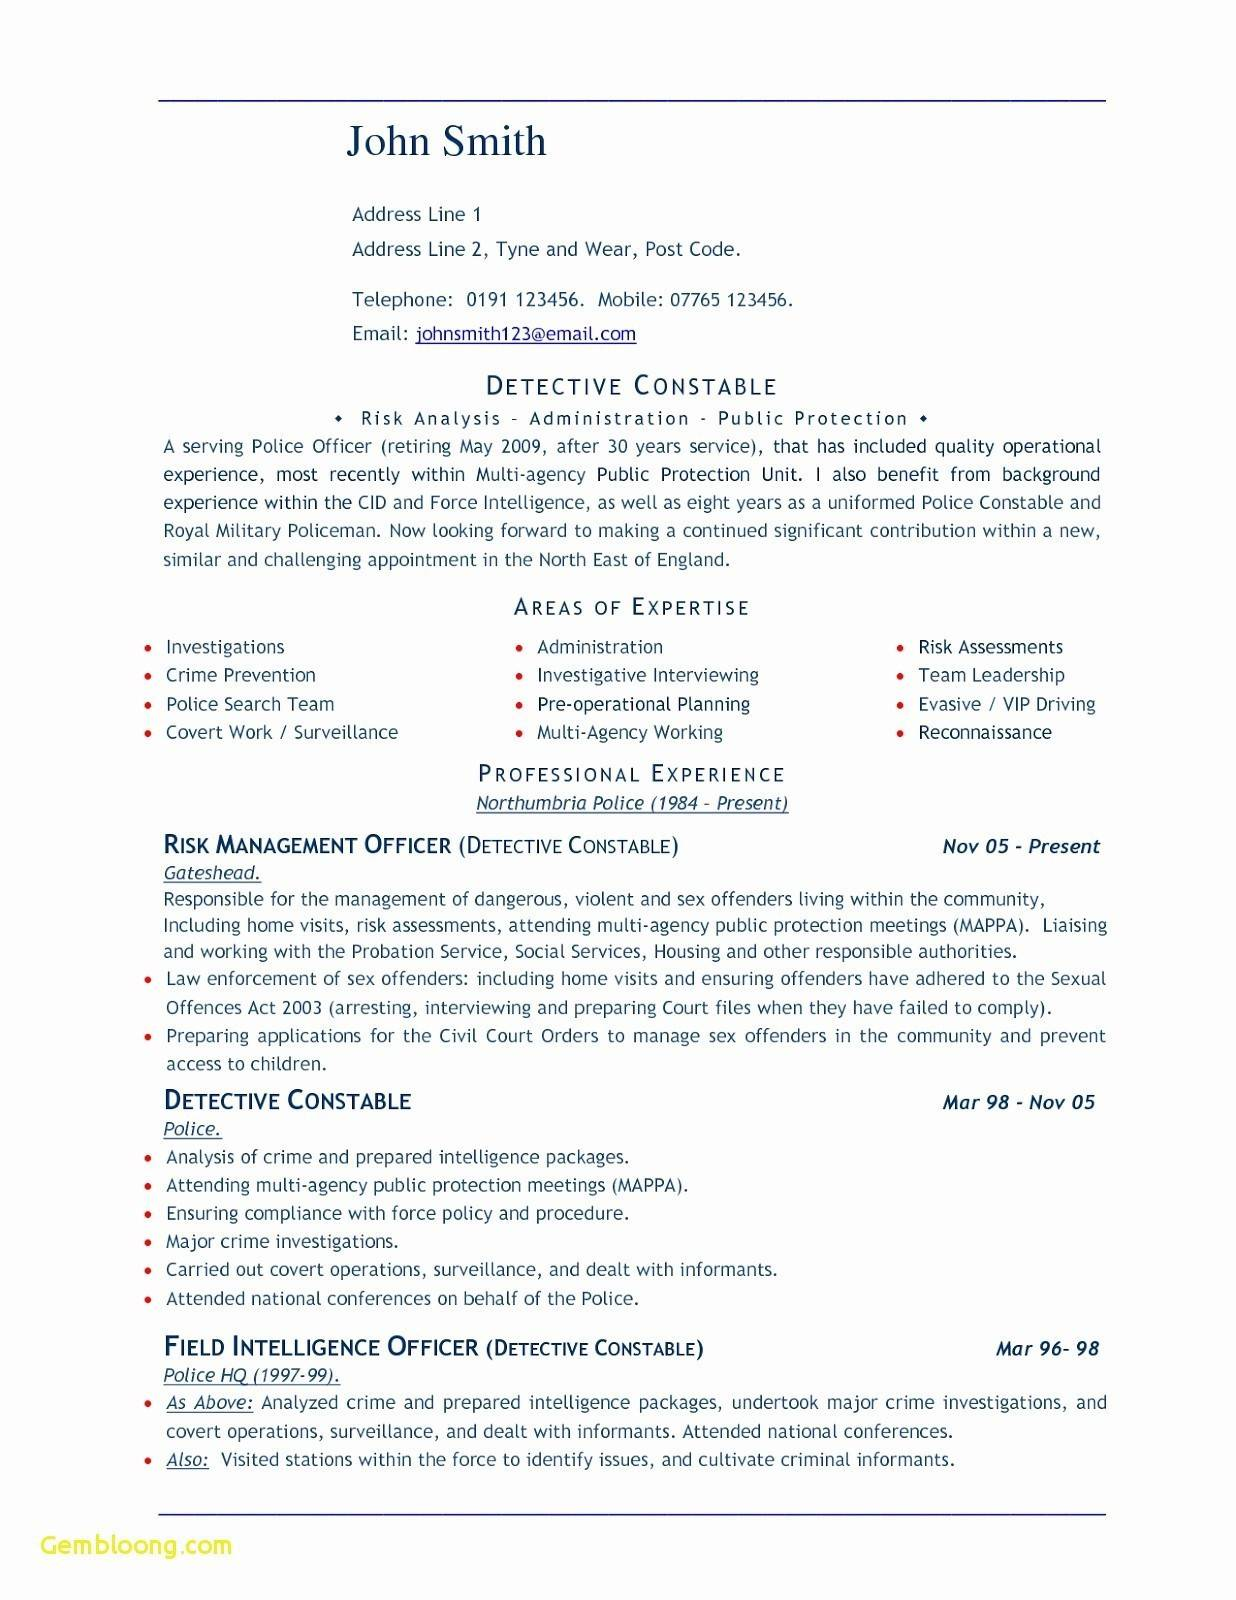 Resume Templates For Word 2013 Free